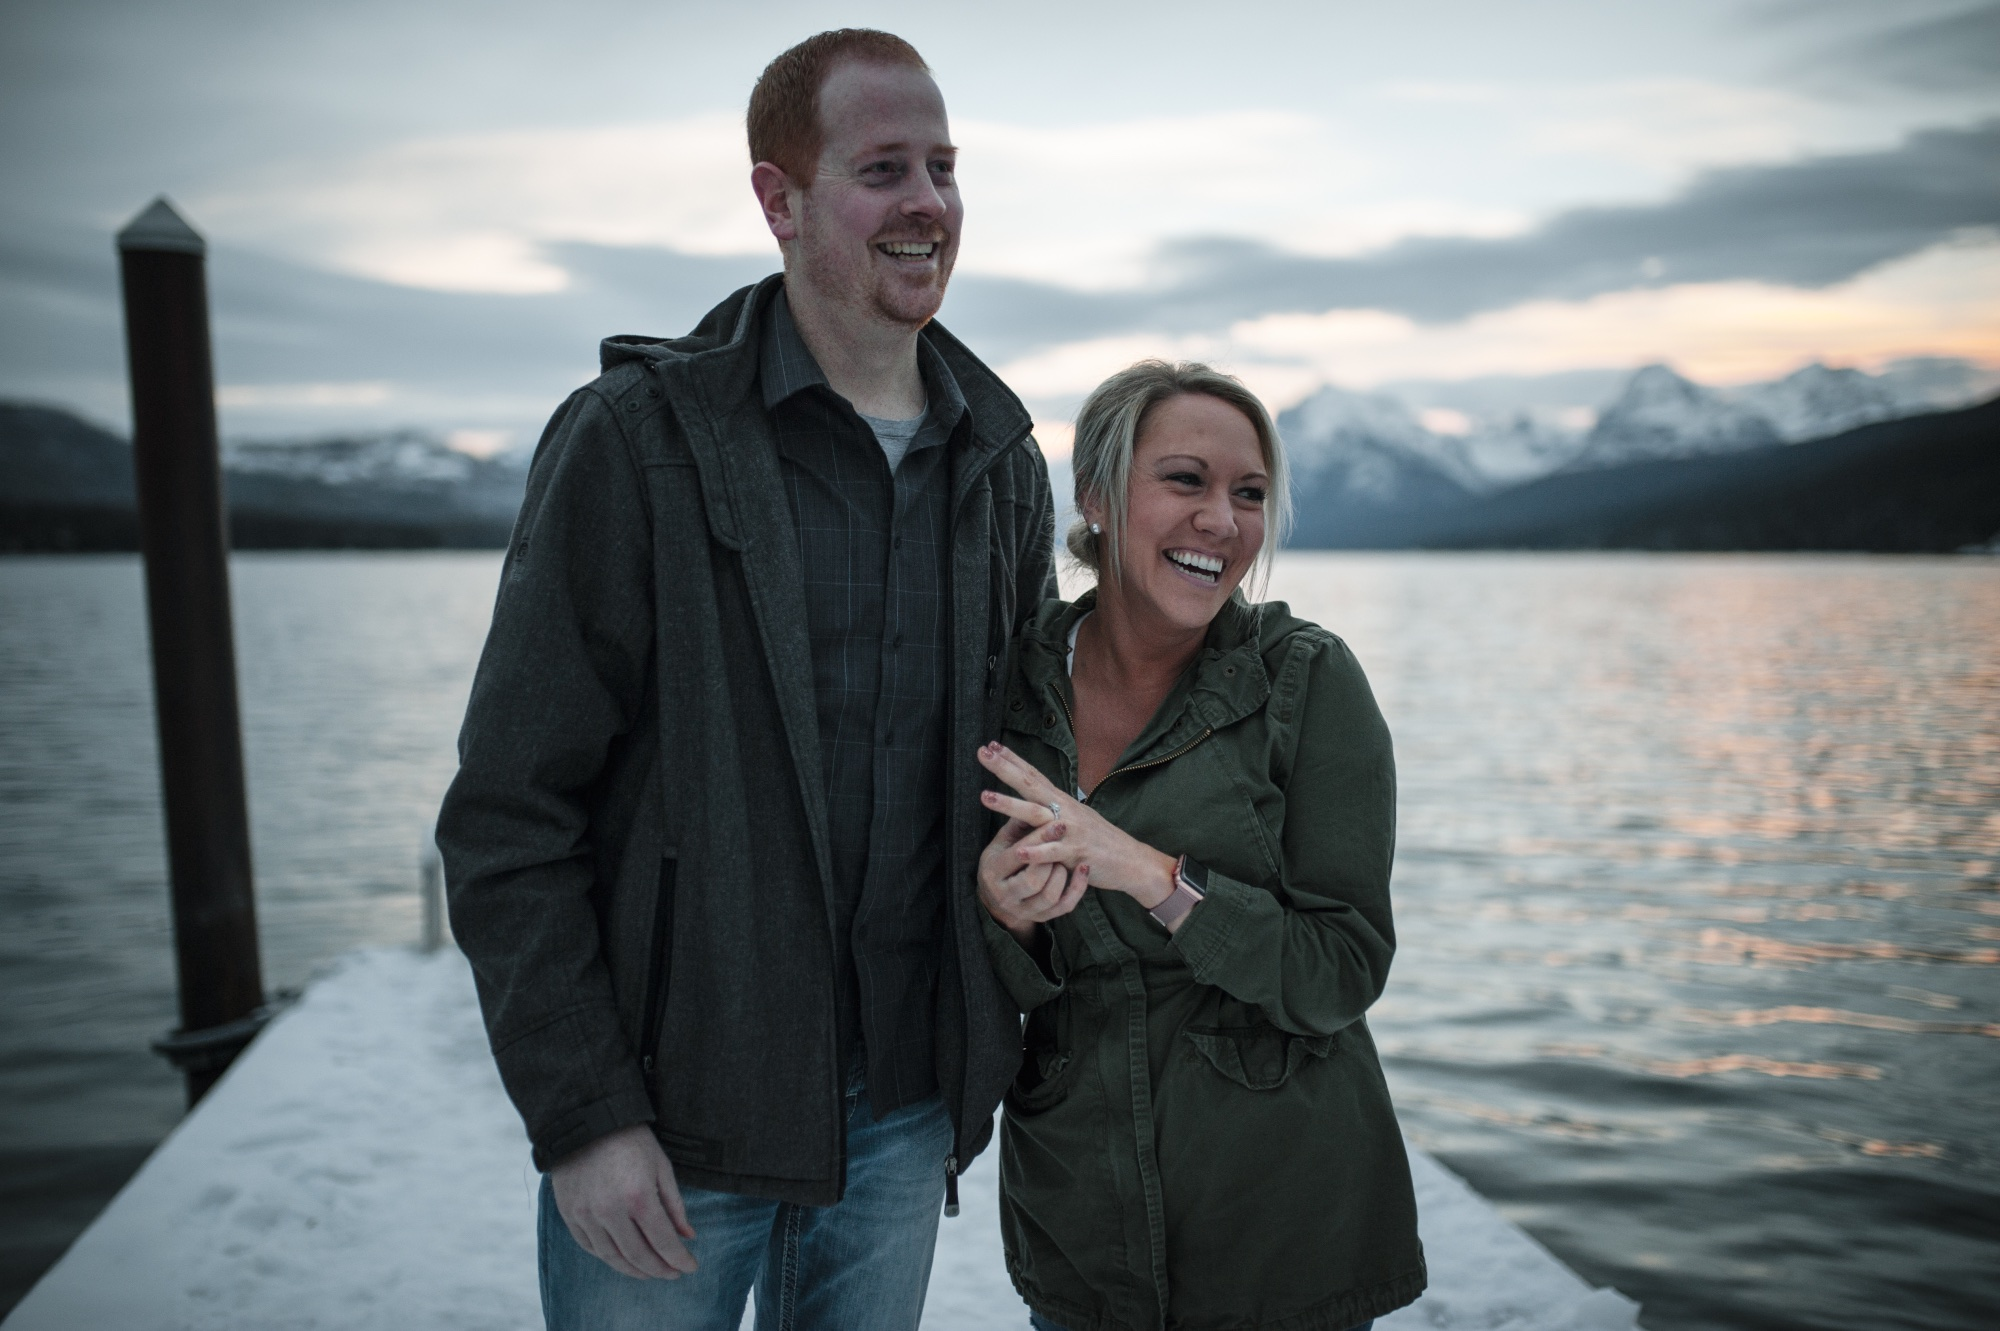 lindseyjanephotography_proposal012.jpg